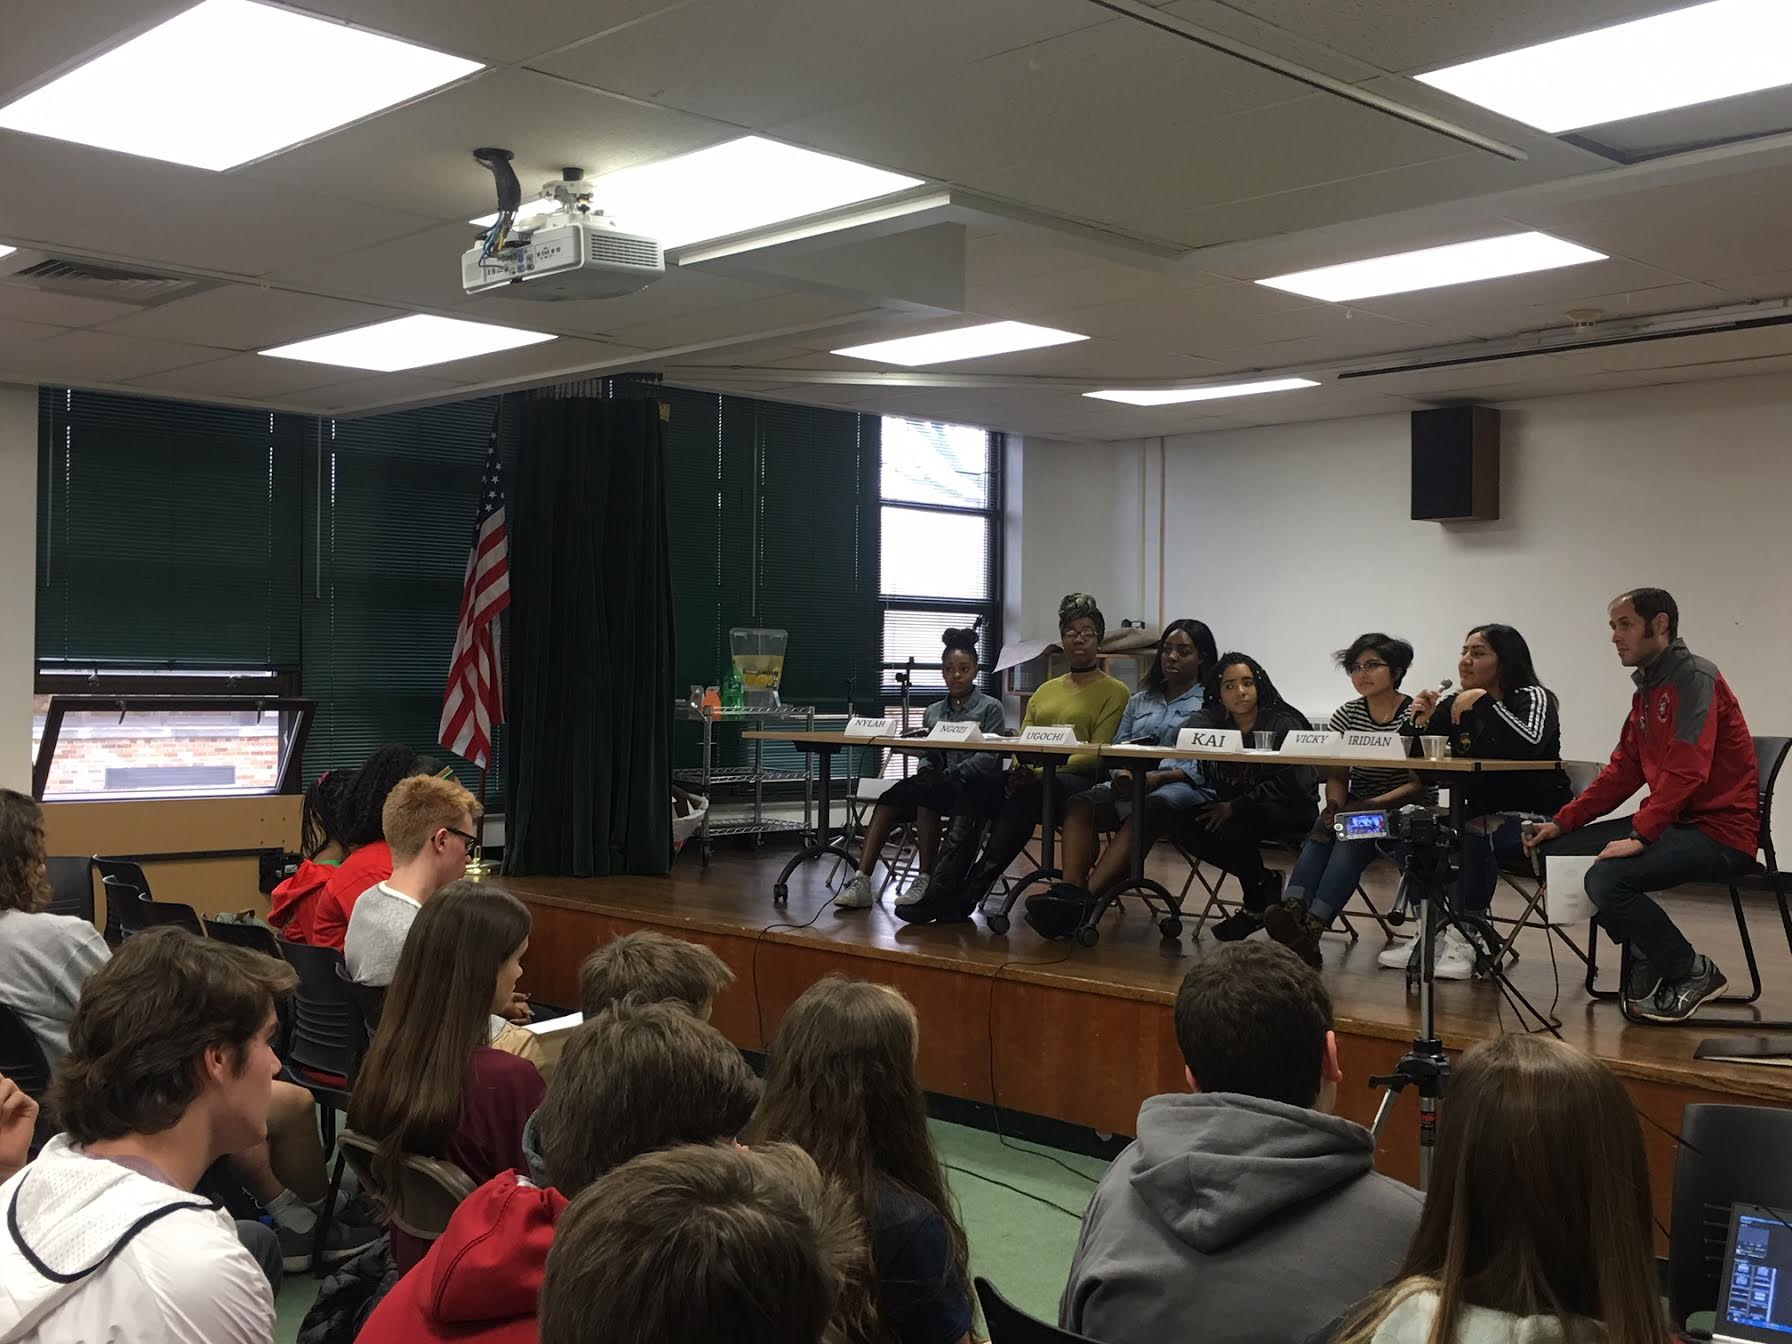 Students from all classes were invited to a town hall style discussion about racism on Feb. 24 as a part of Black History Month.